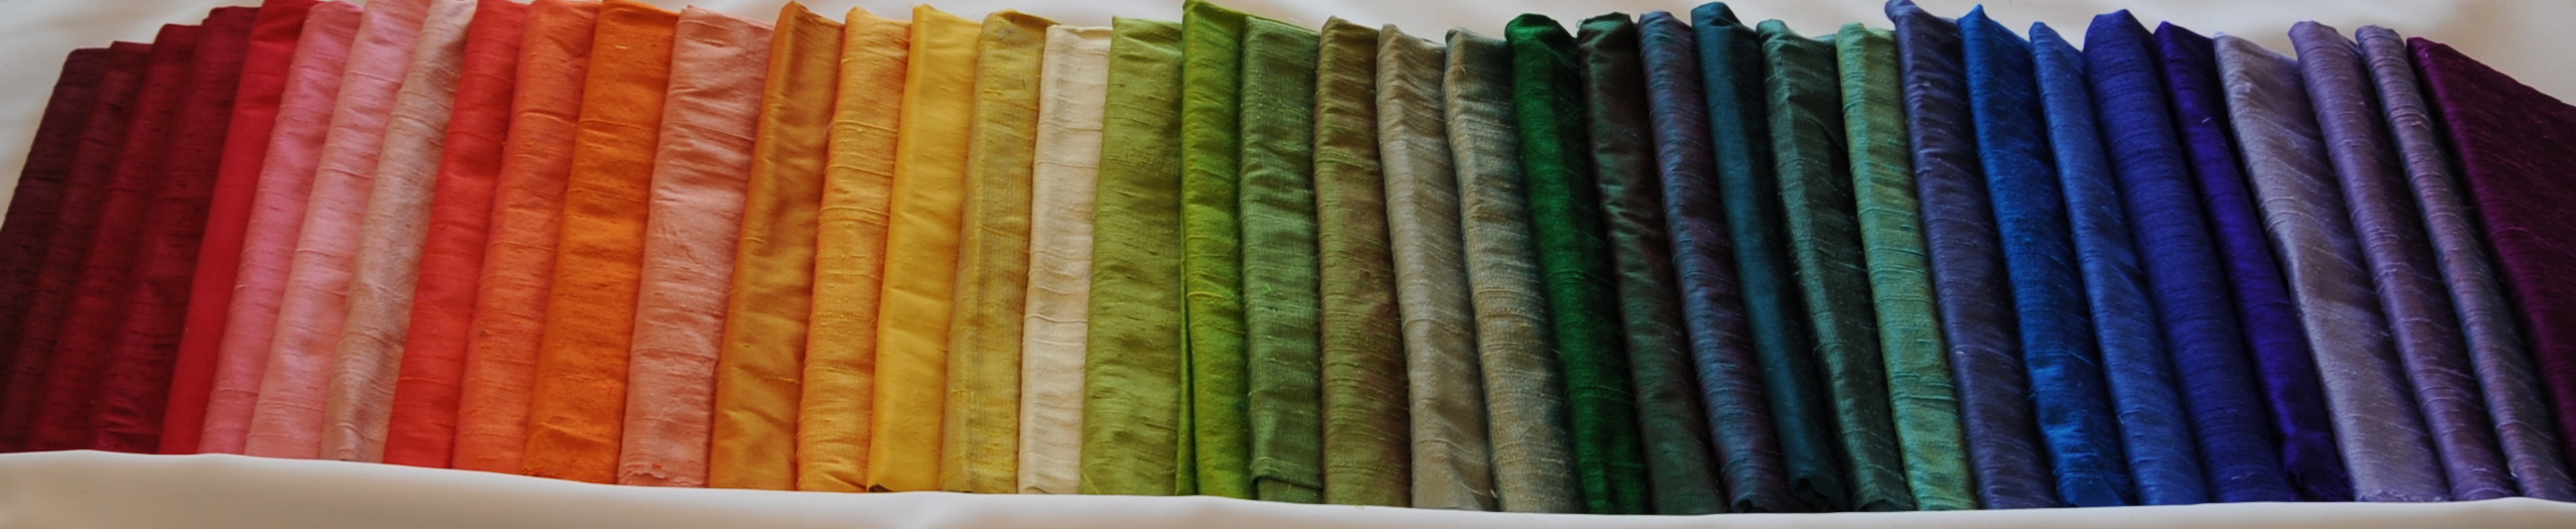 Rainbow of yardage